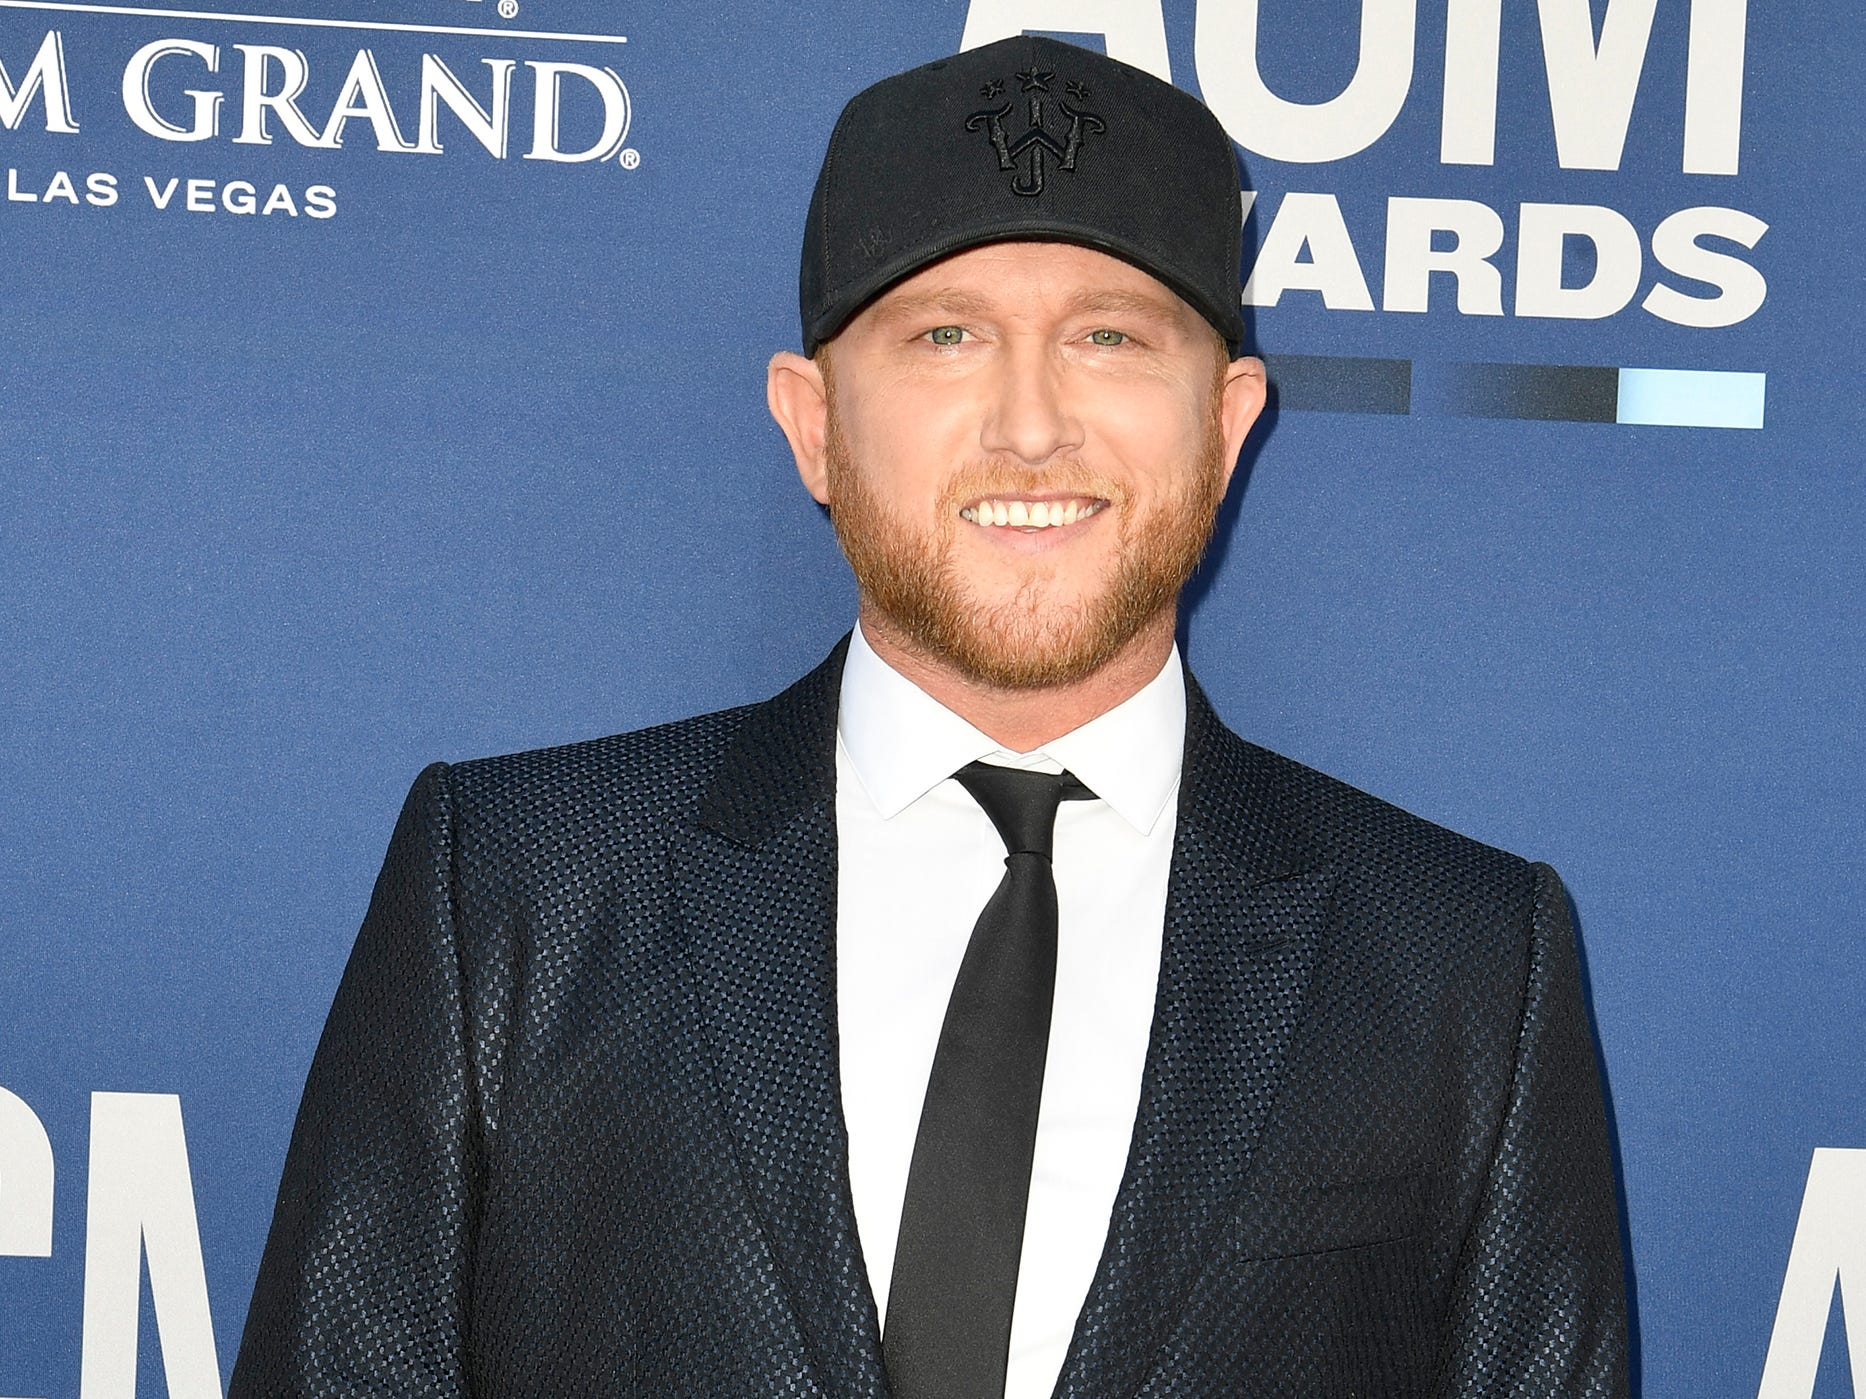 Cole Swindell walks the red carpet at the 54TH Academy of Country Music Awards Sunday, April 7, 2019, in Las Vegas, Nev.